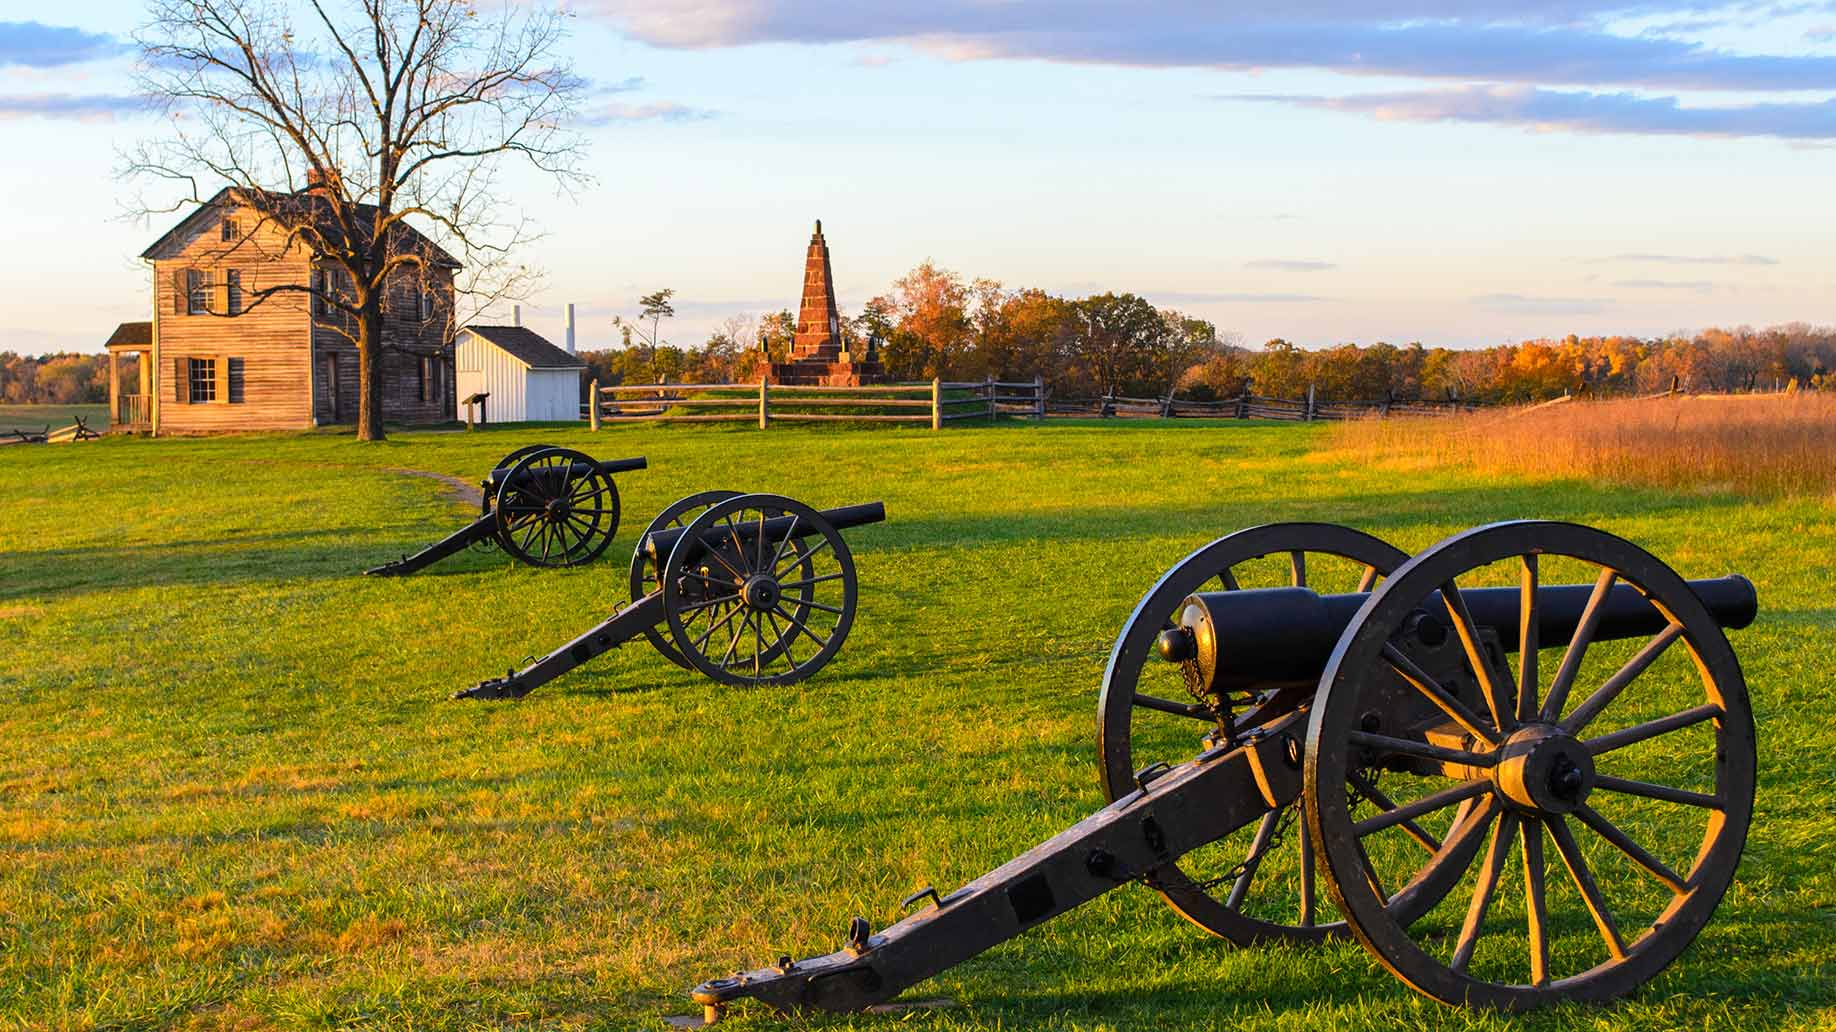 How Much Does a Civil War Battlefields Tour Cost - Prices